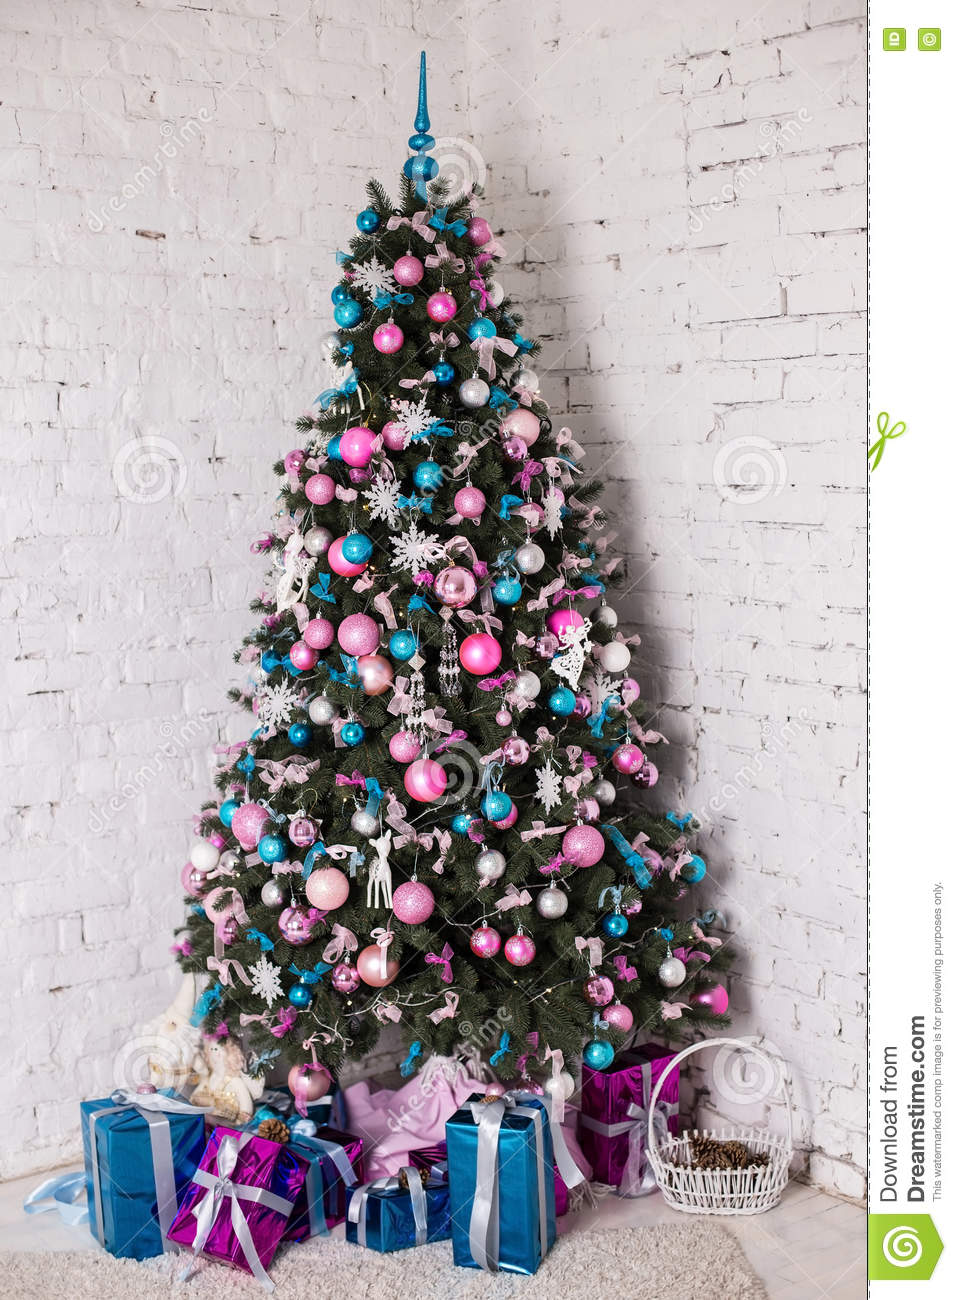 White christmas tree with blue and silver decorations - Decorated Christmas Tree On White Background Stock Photo Image